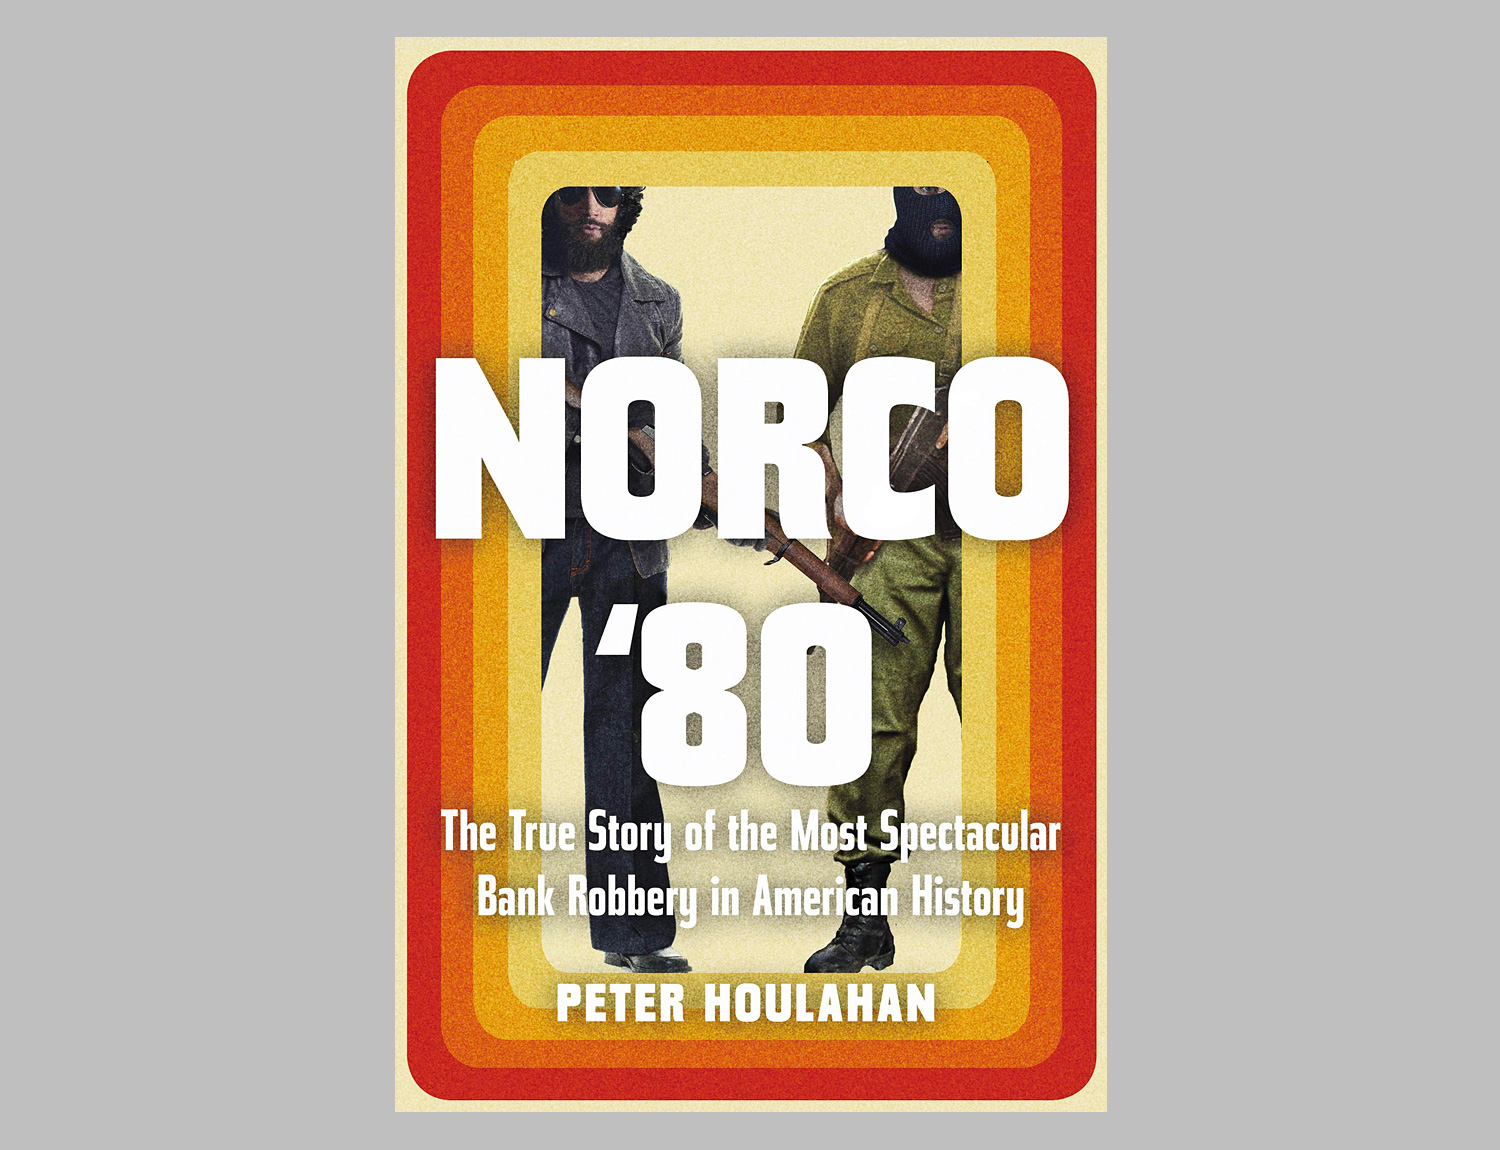 Norco '80: The True Story of the Most Spectacular Bank Robbery in American History at werd.com